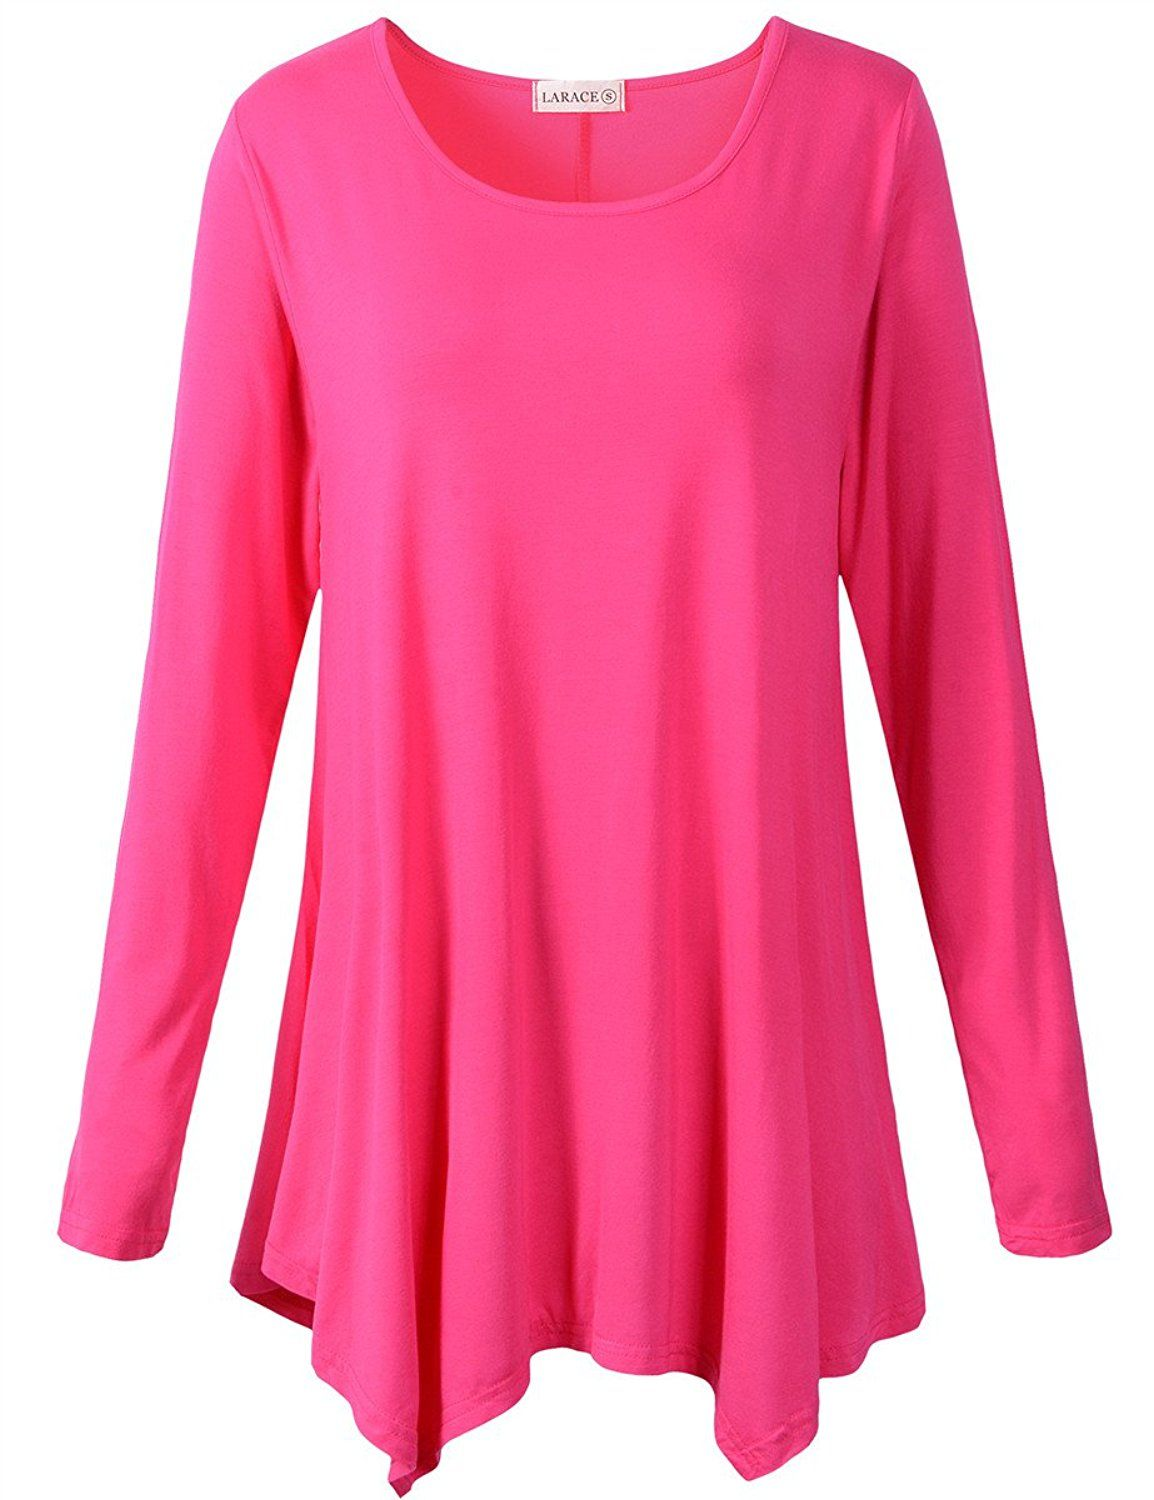 LARACE Womens Long Sleeve Flattering Comfy Tunic Loose Fit Flowy Top at Amazon Women's Clothing store: